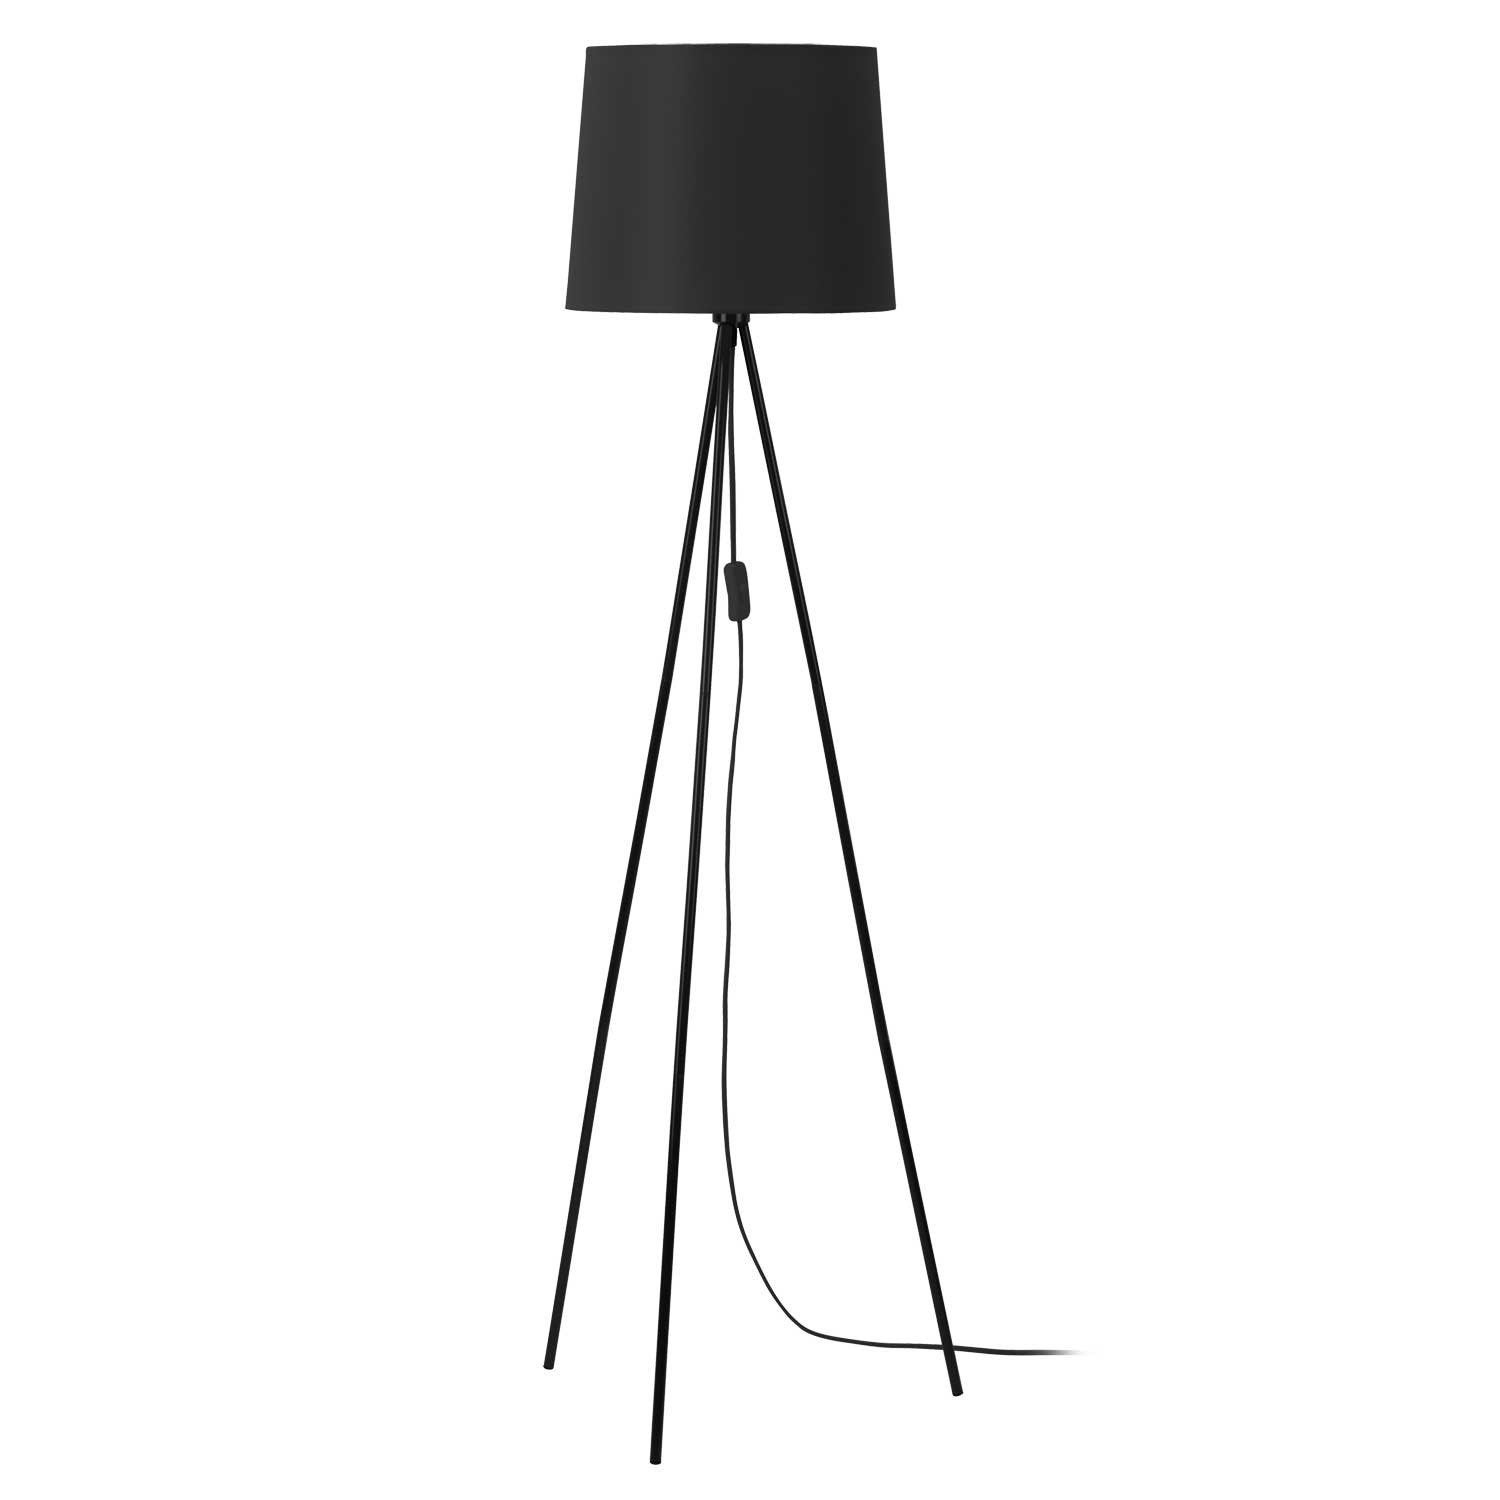 lampadaire miya 146 cm noir 60 w leroy merlin. Black Bedroom Furniture Sets. Home Design Ideas